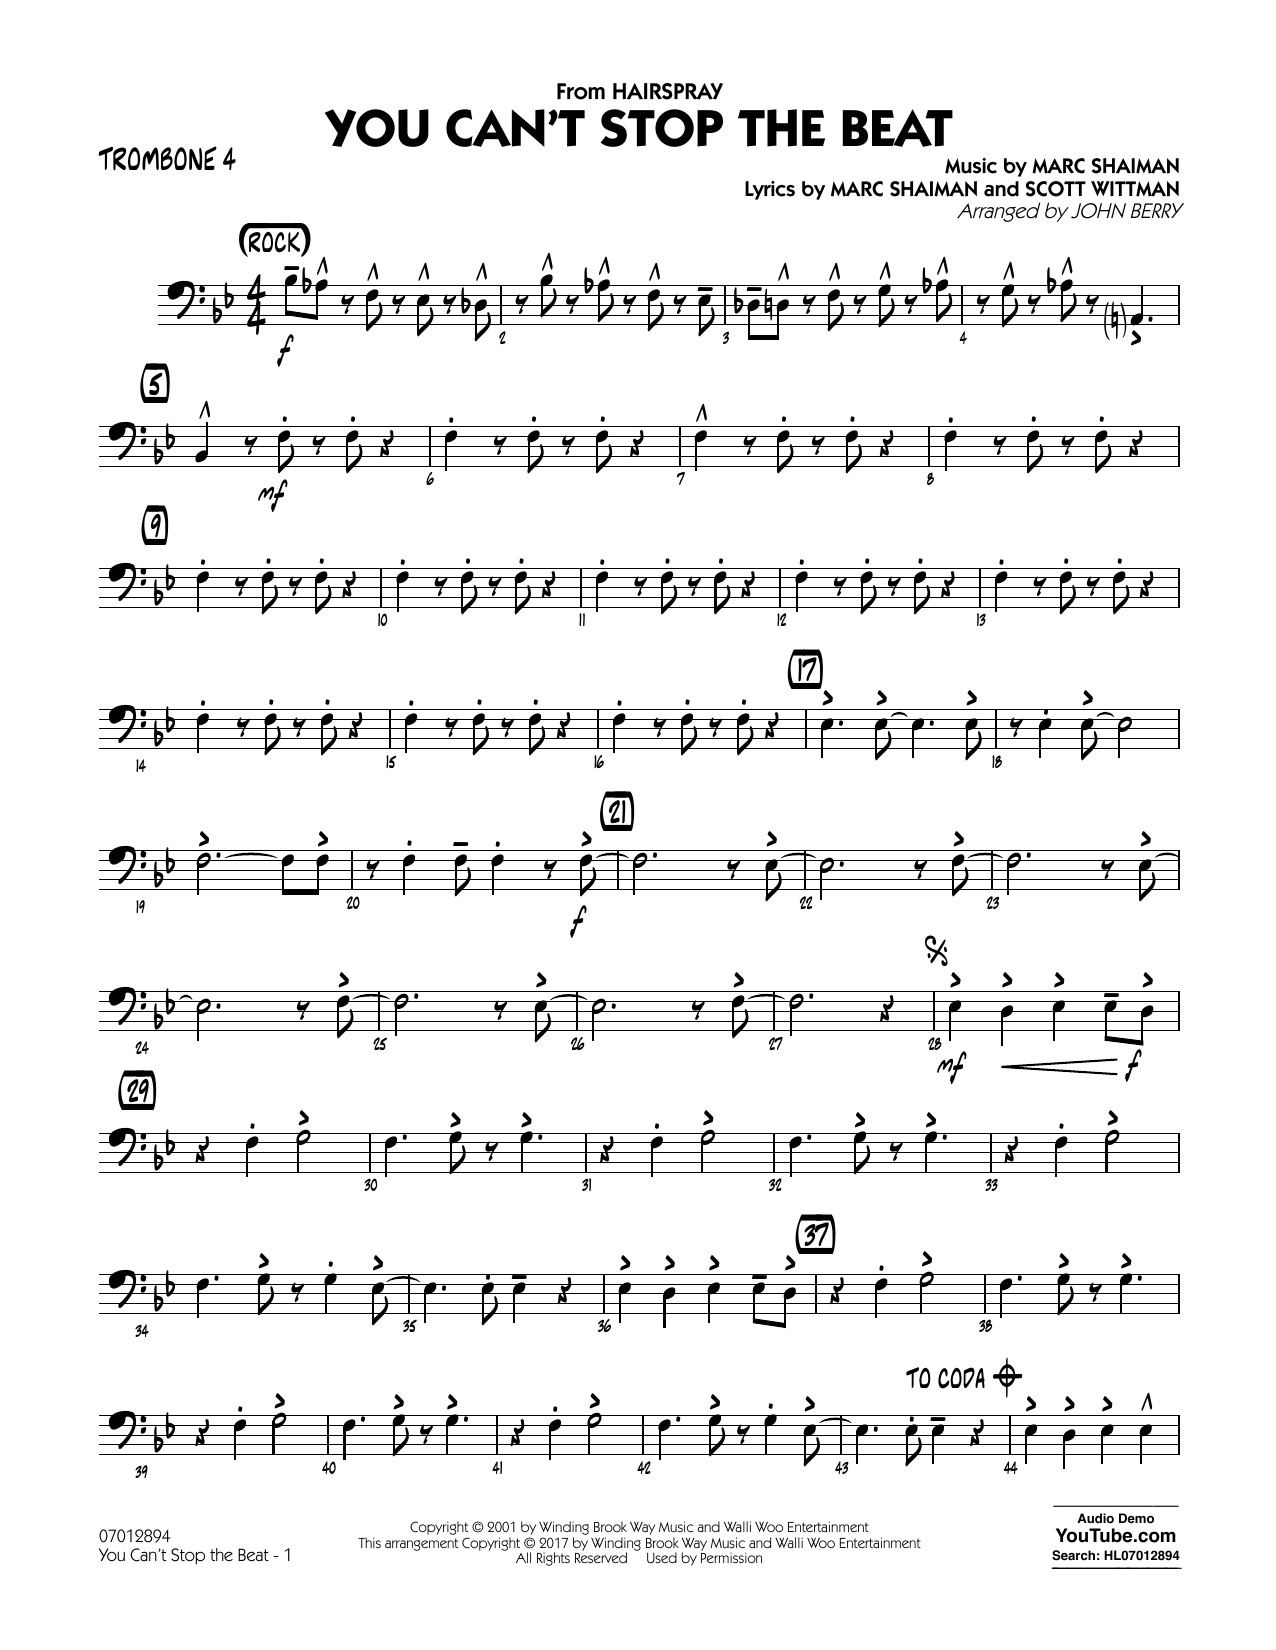 You Can't Stop the Beat (from Hairspray) - Trombone 4 Sheet Music